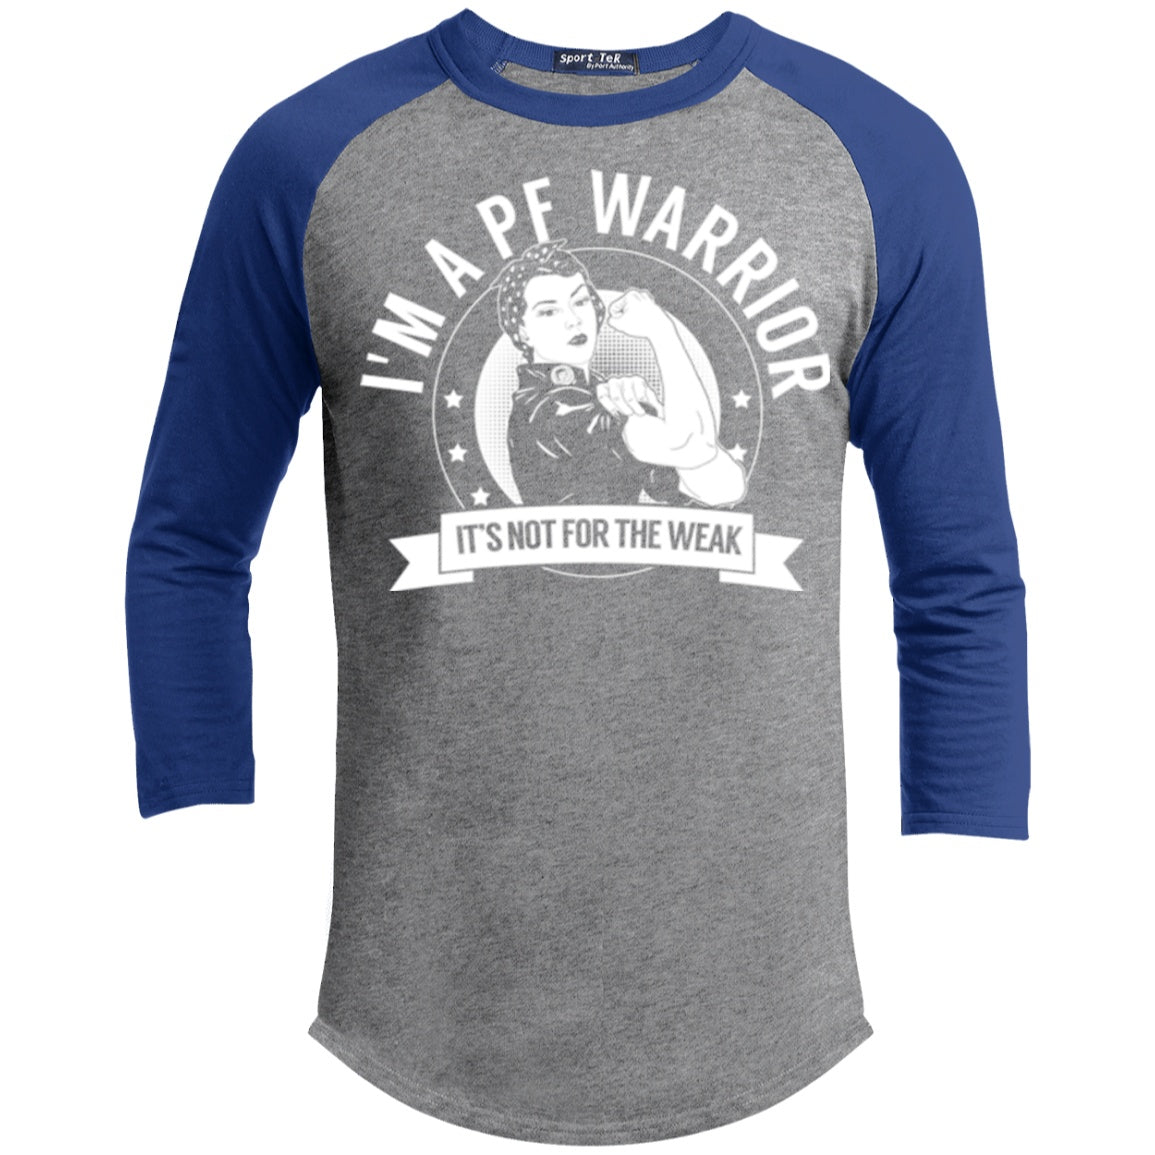 T-Shirts - Pulmonary Fibrosis - PF Warrior Not For The Weak Baseball Shirt